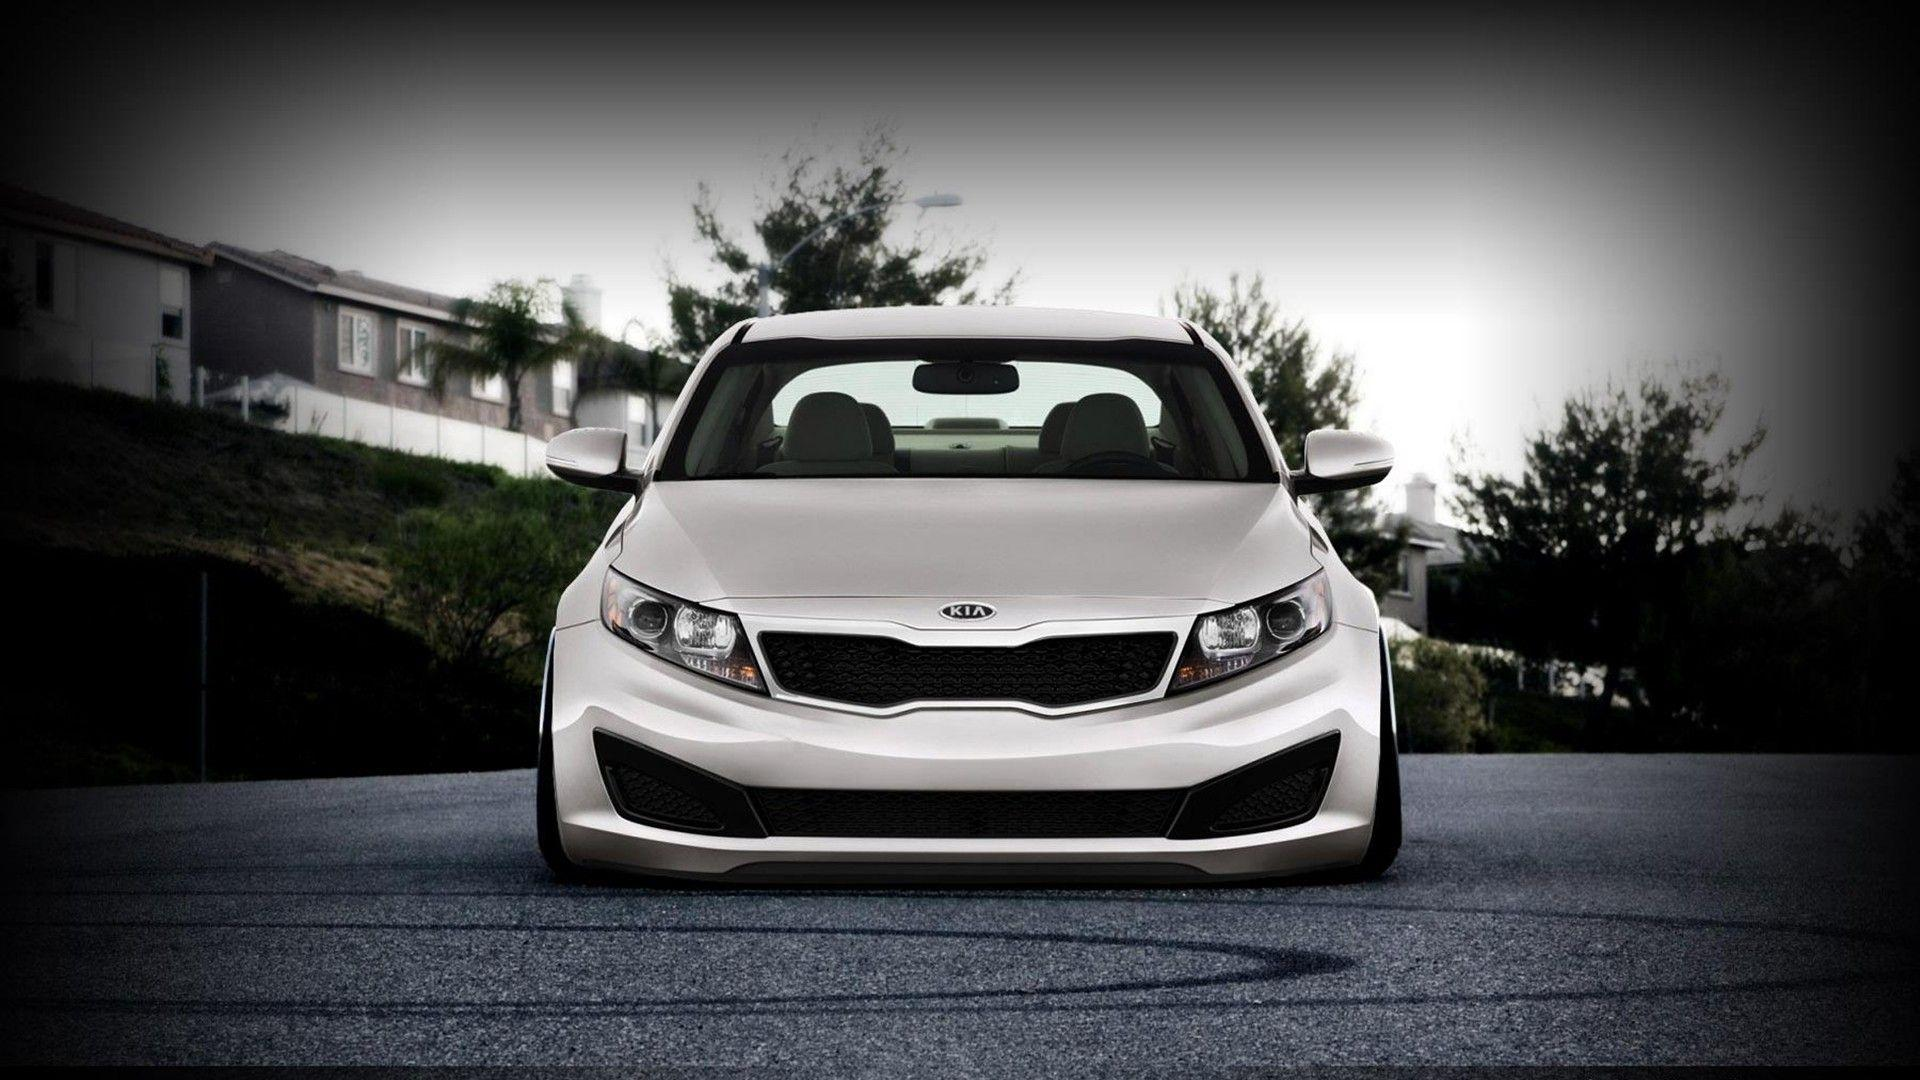 cars, KIA, automobiles, Kia Optima :: Wallpapers